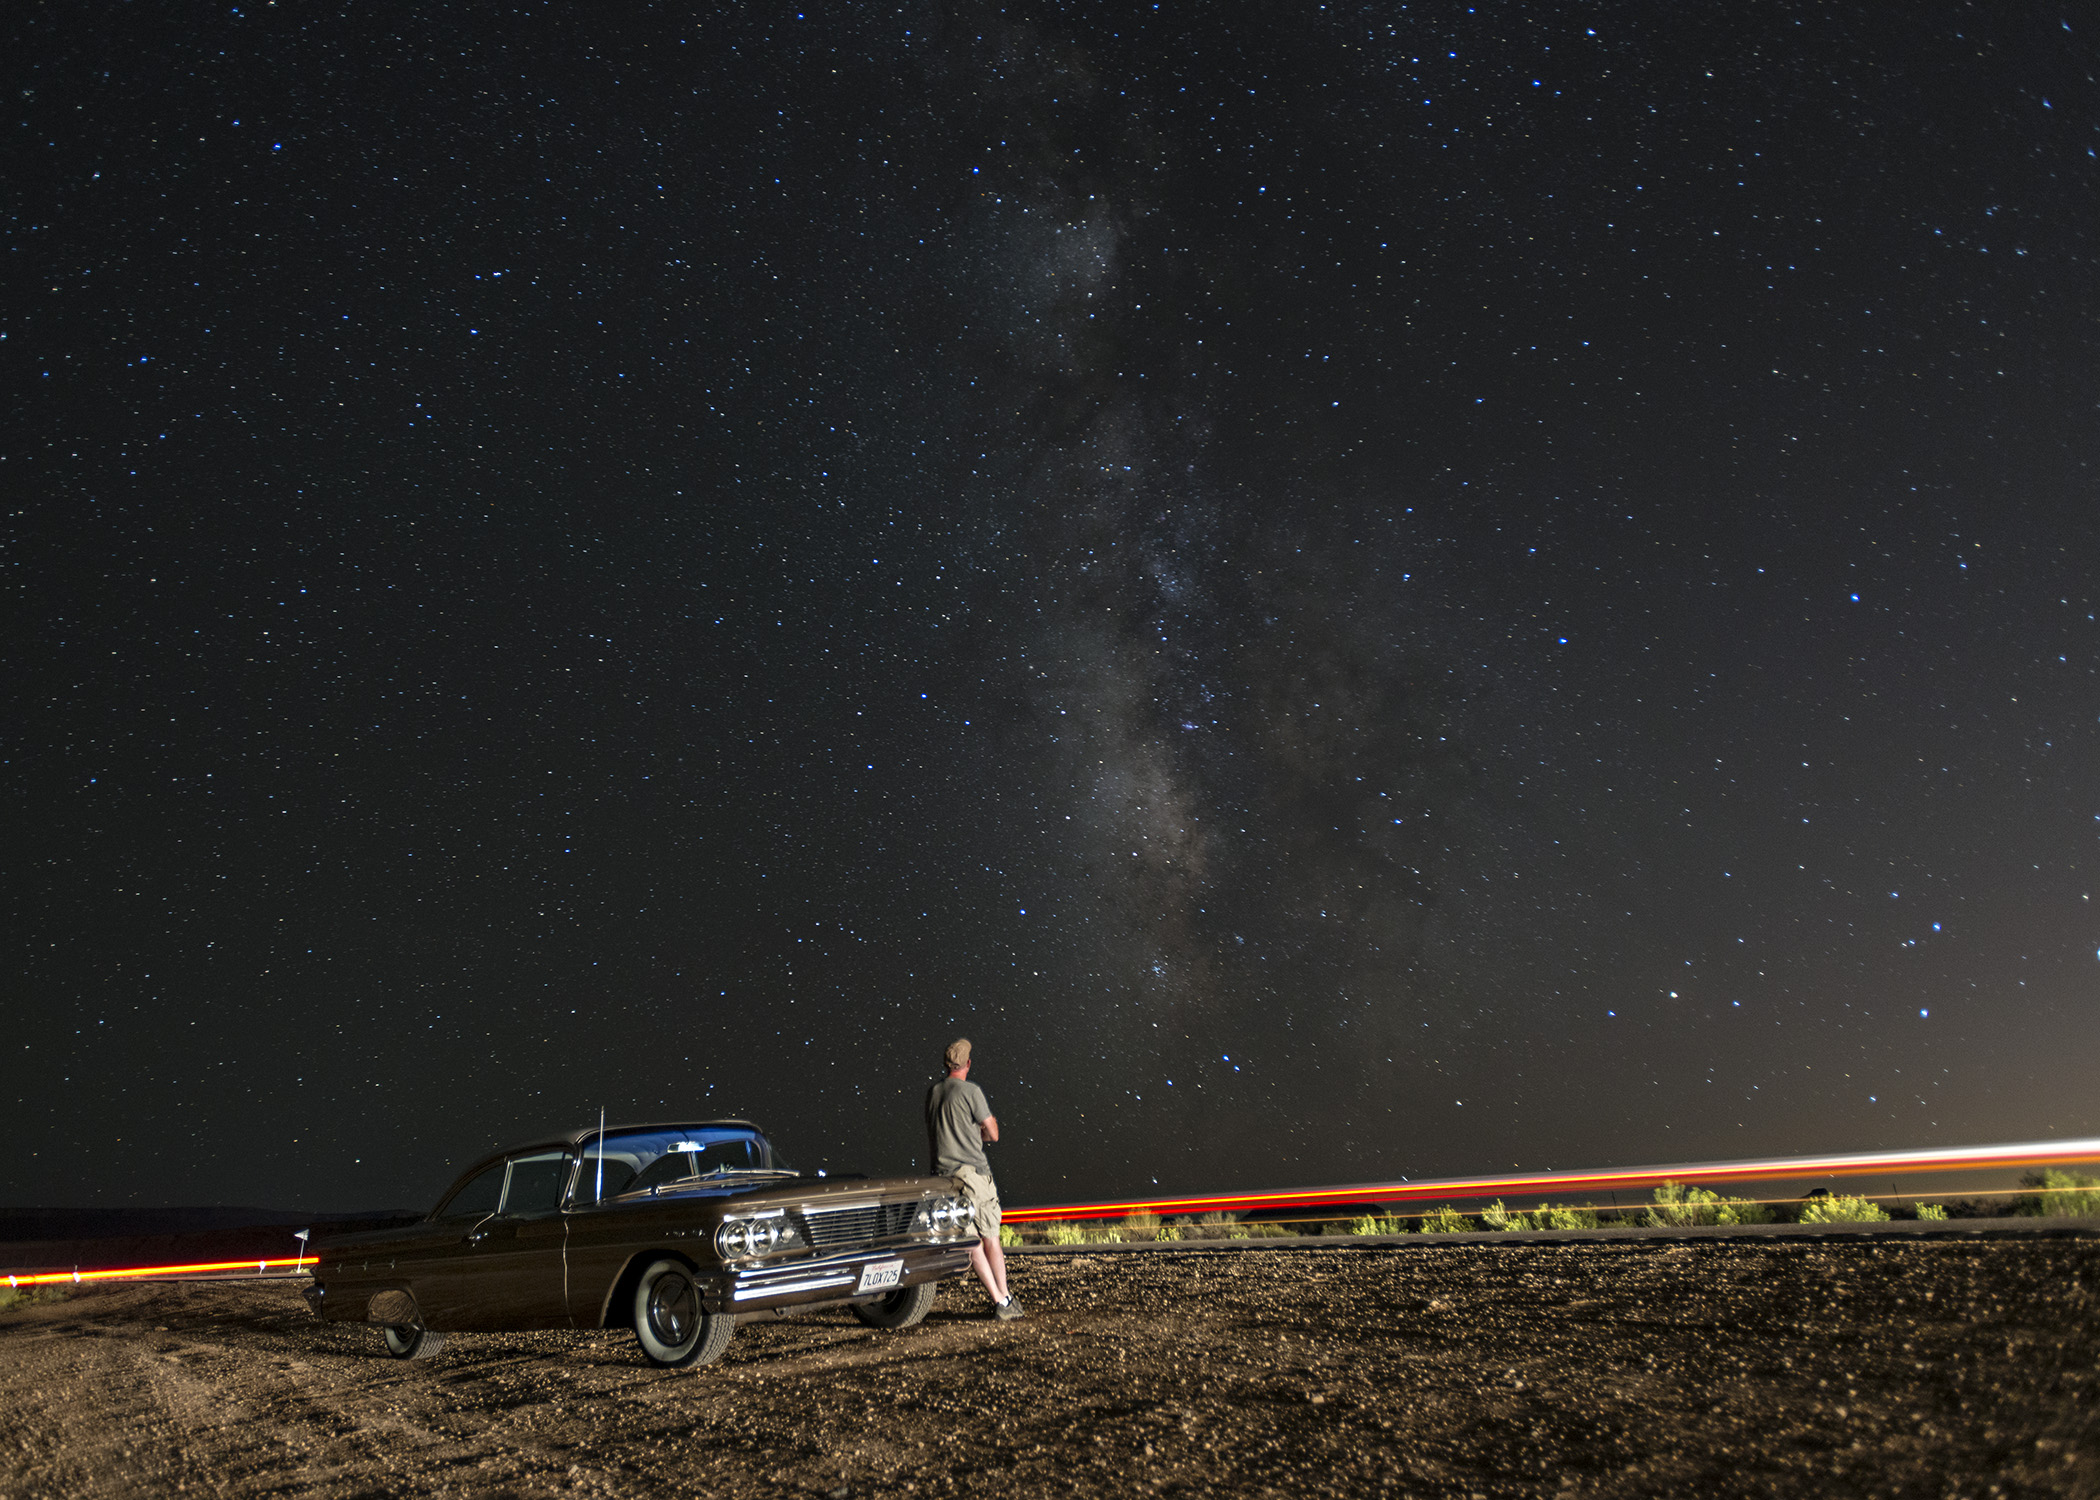 Self portrait east of St. George. I found it hard to leave. Nikon D800, 17-35mm lens @ 20mm, iso 1600, f2.8, 25 sec.